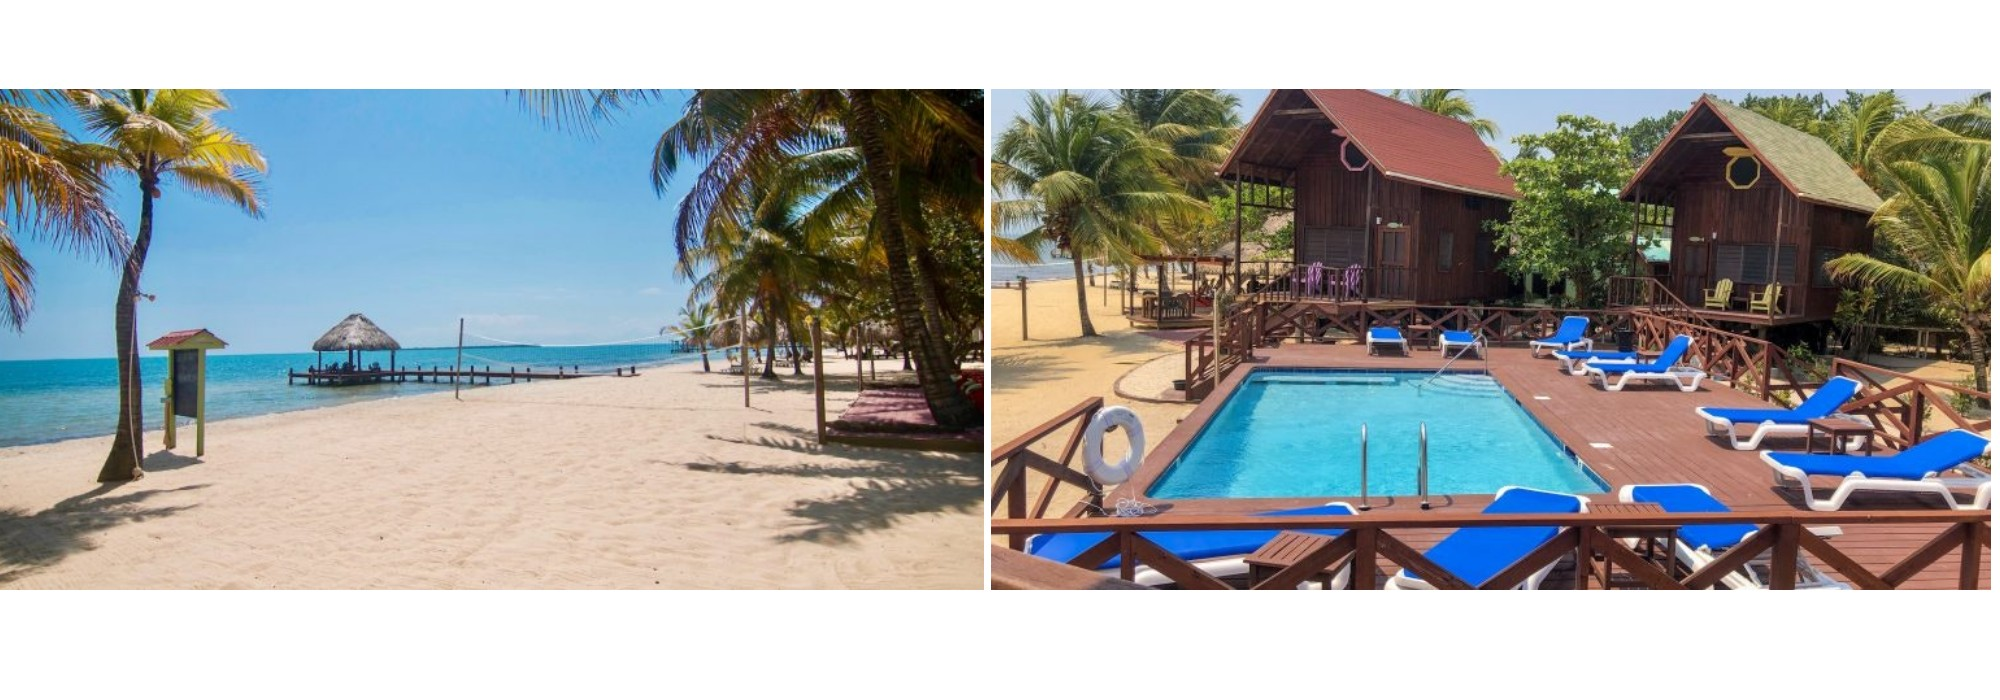 Belize Beach Front Resort for Sale in Maya Beach